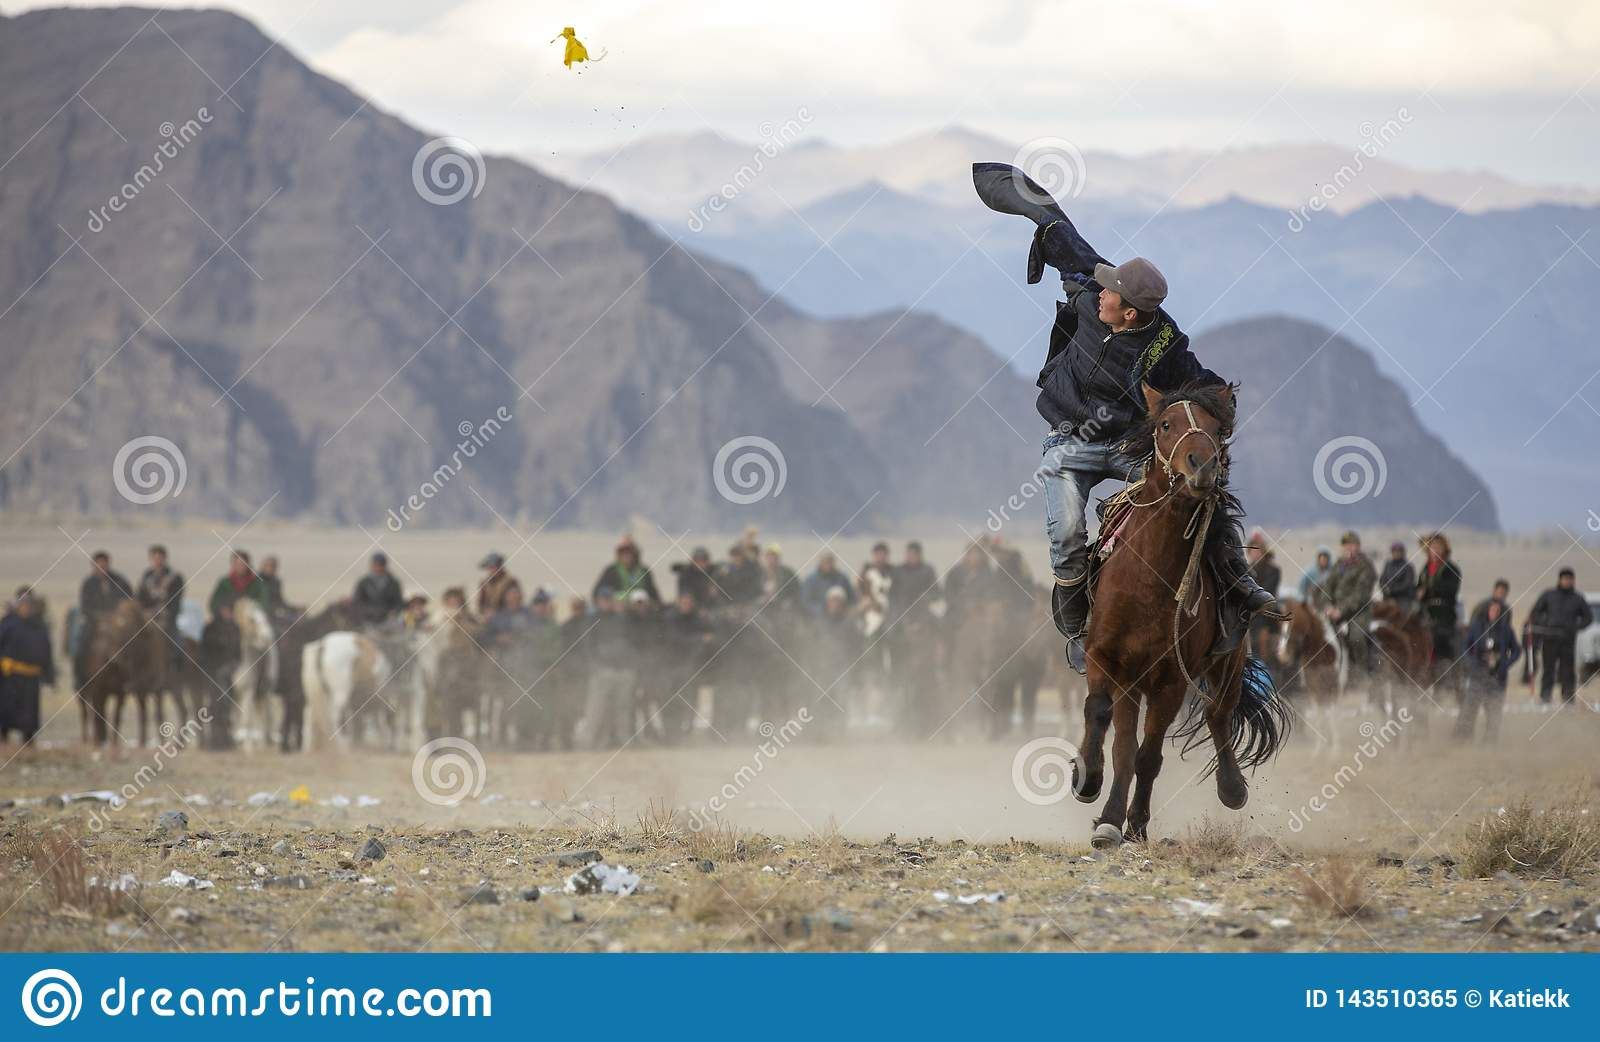 Kazakh man on a horse picking up coins from a ground